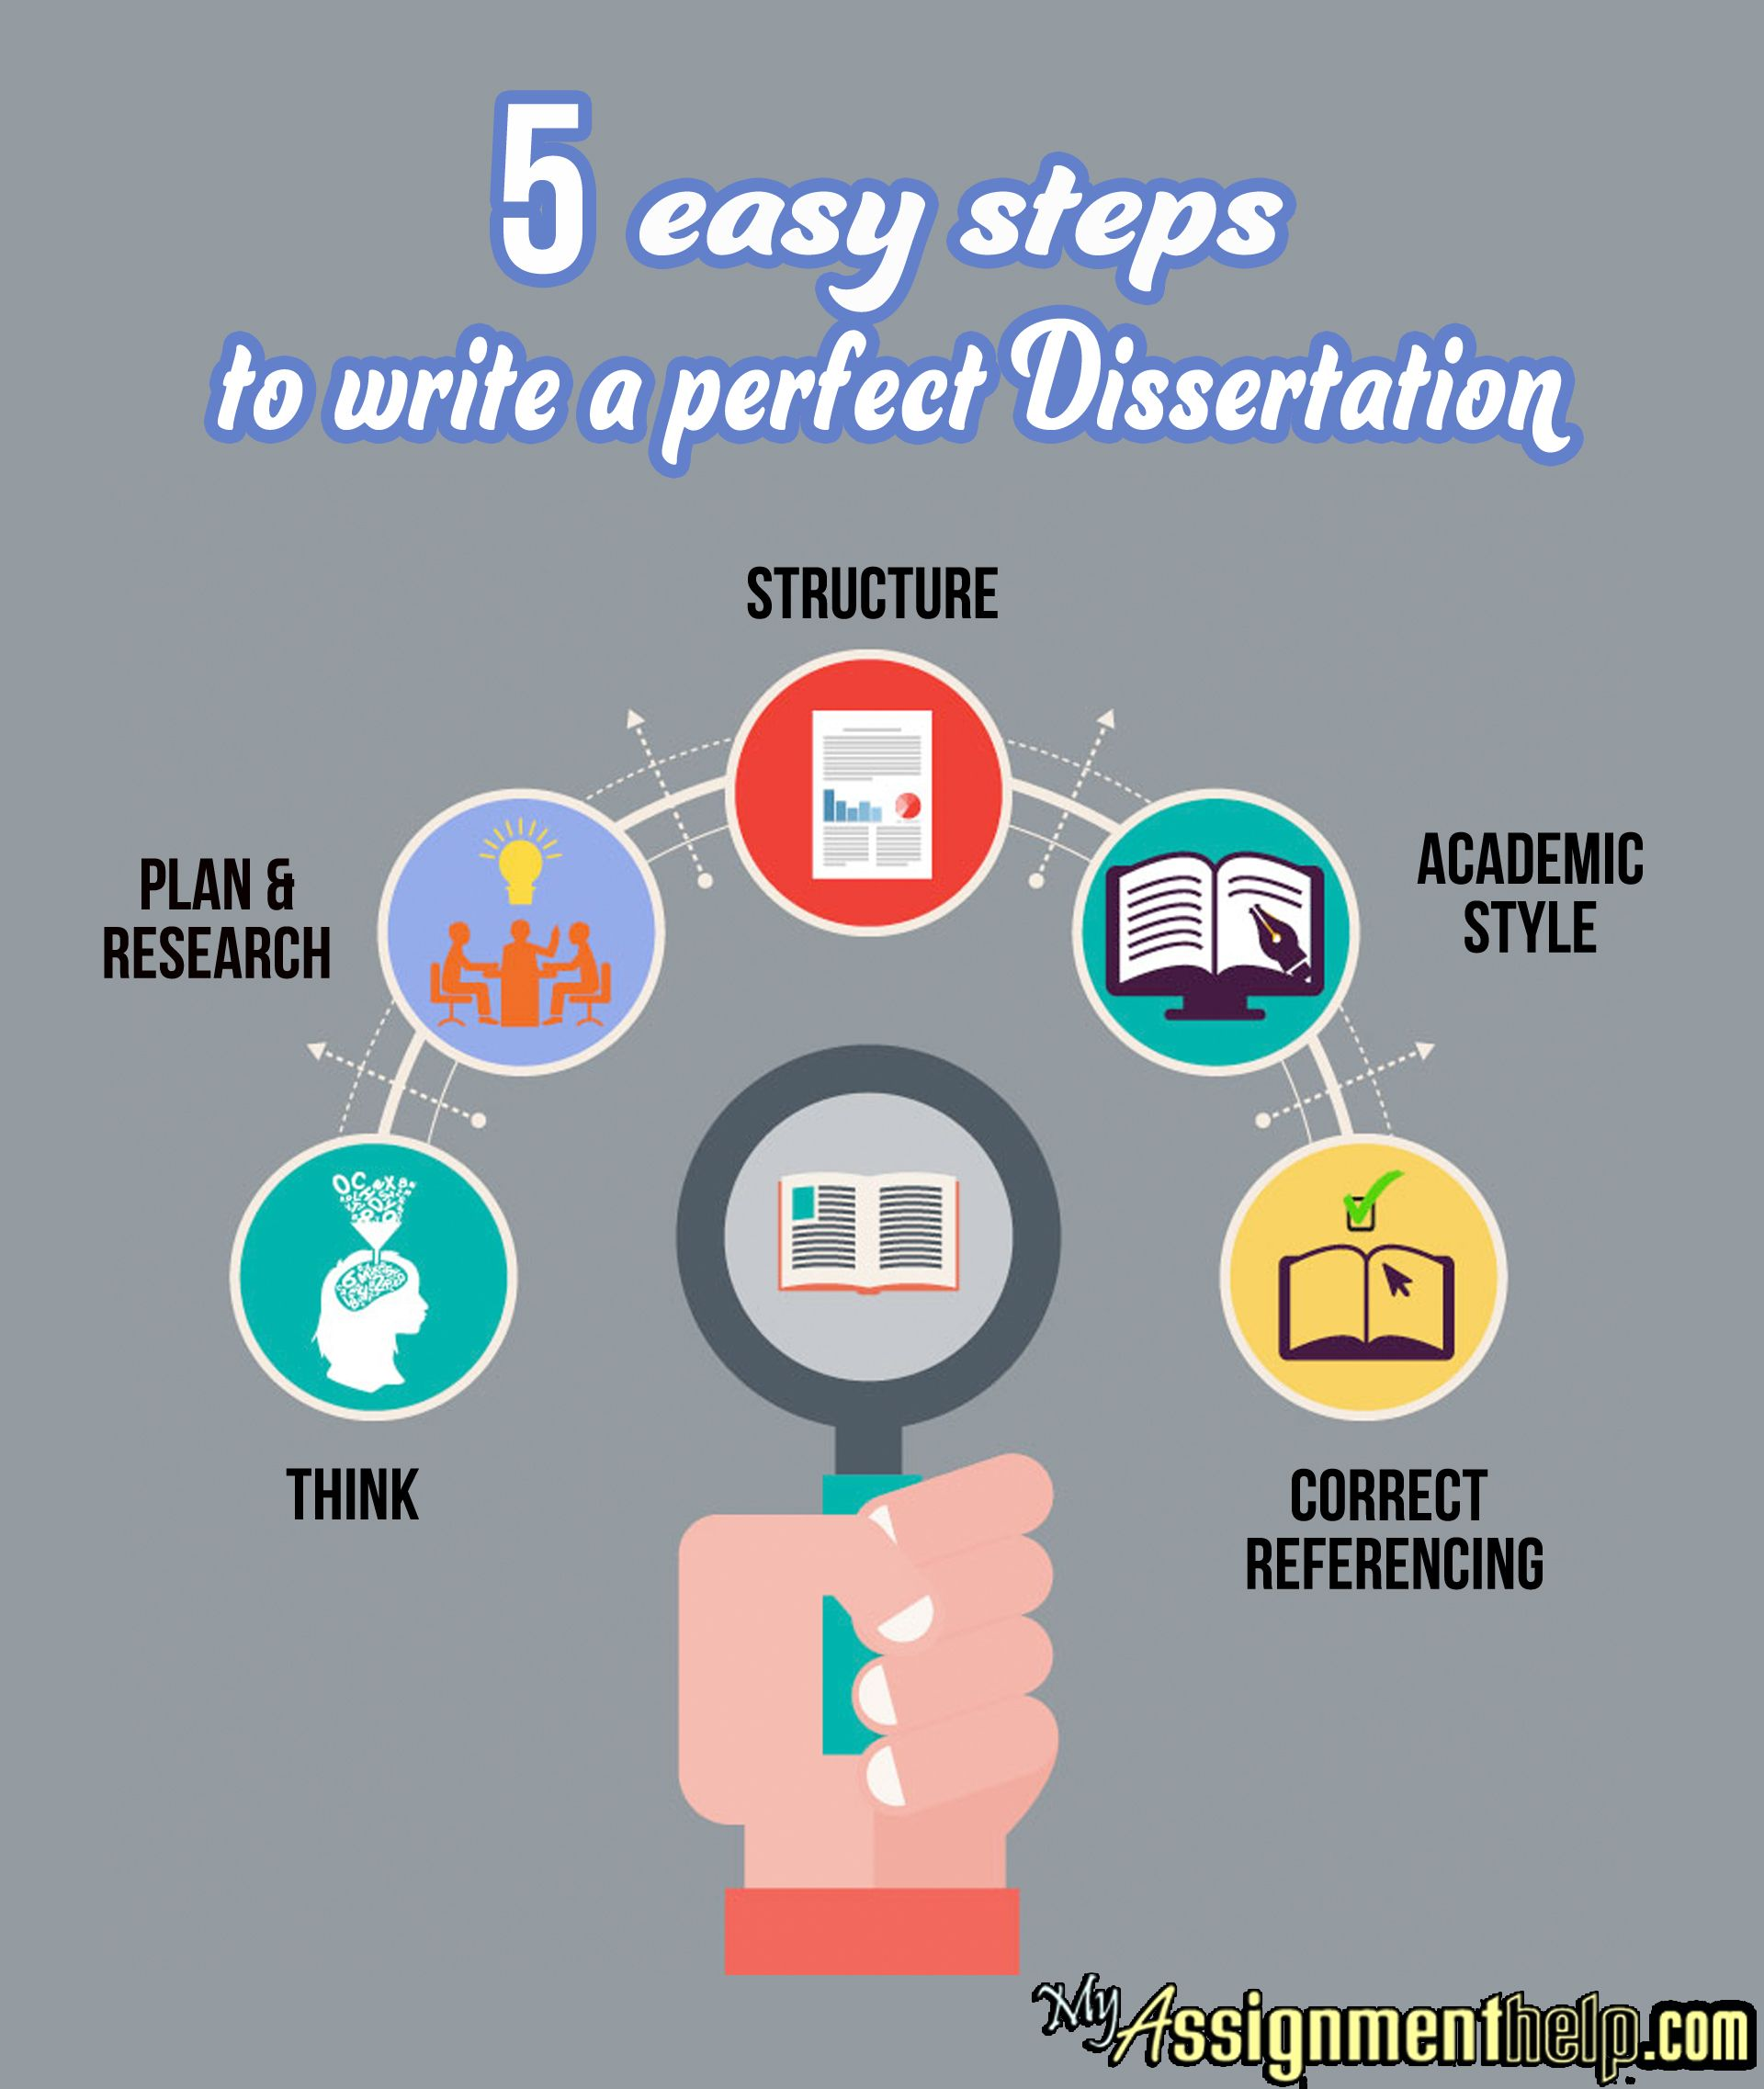 dissertation writings the academic papers uk is providing cheap  the academic papers uk is providing cheap dissertation writing services essay writing